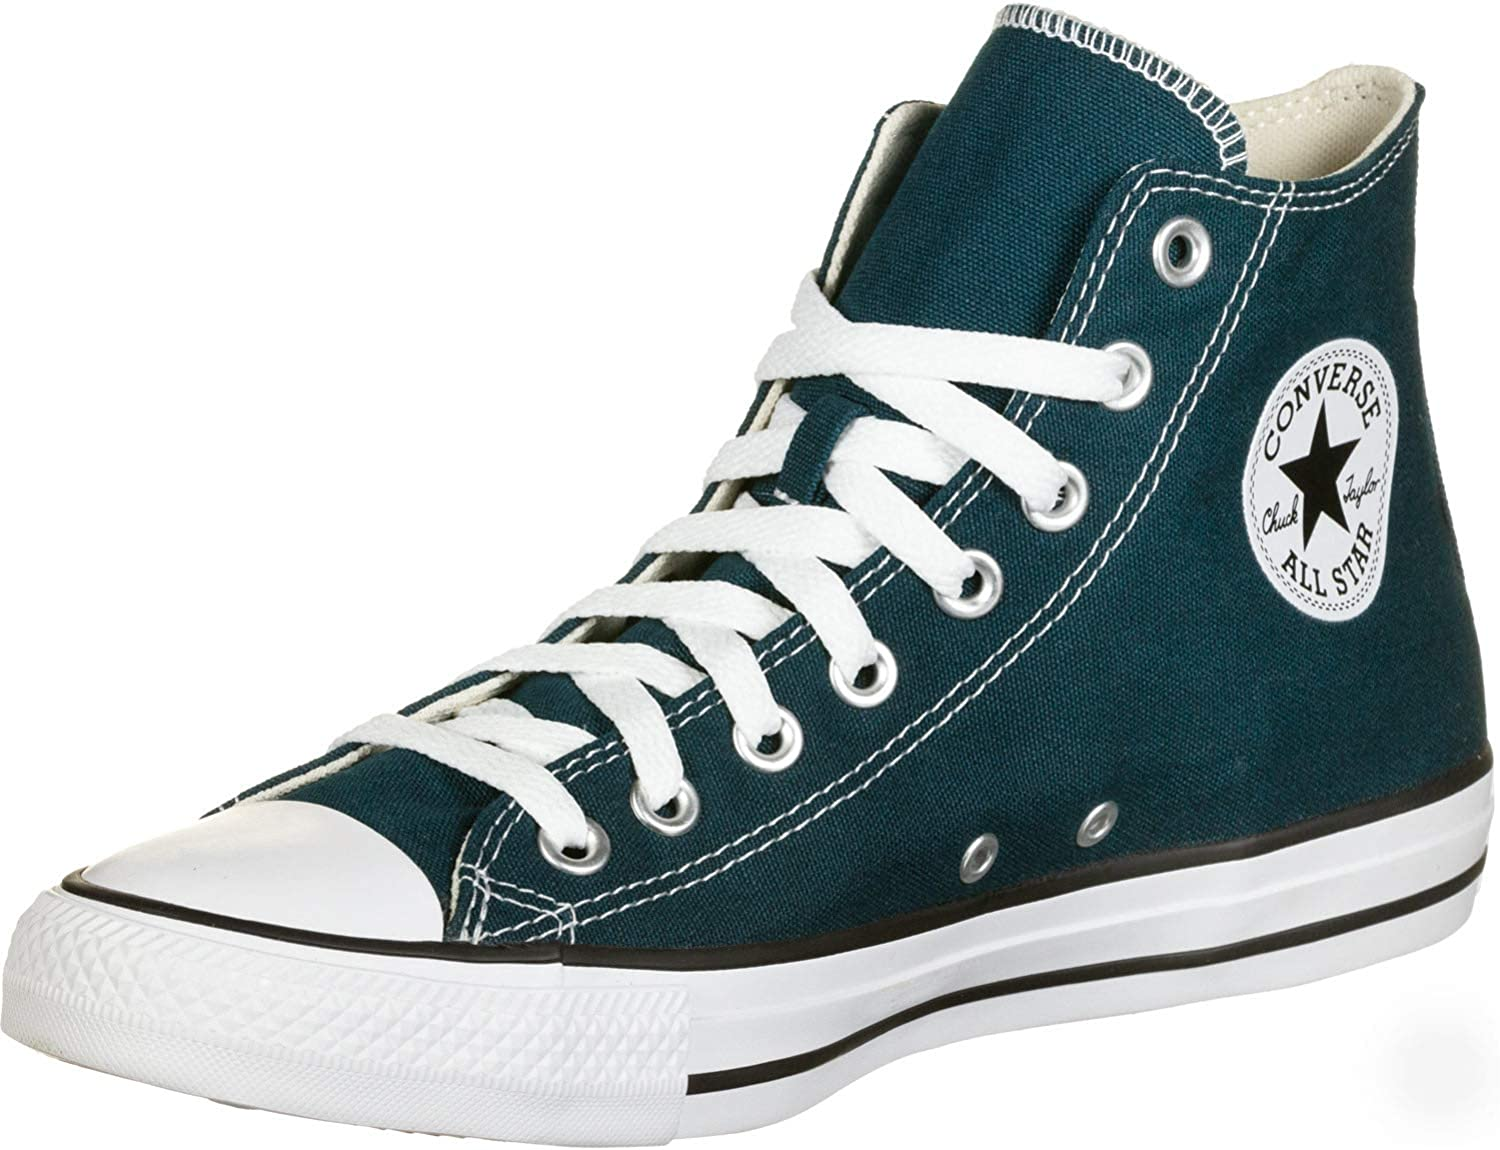 Converse Chuck Taylor All Star Seasonal Hi Midnight Turq Canvas